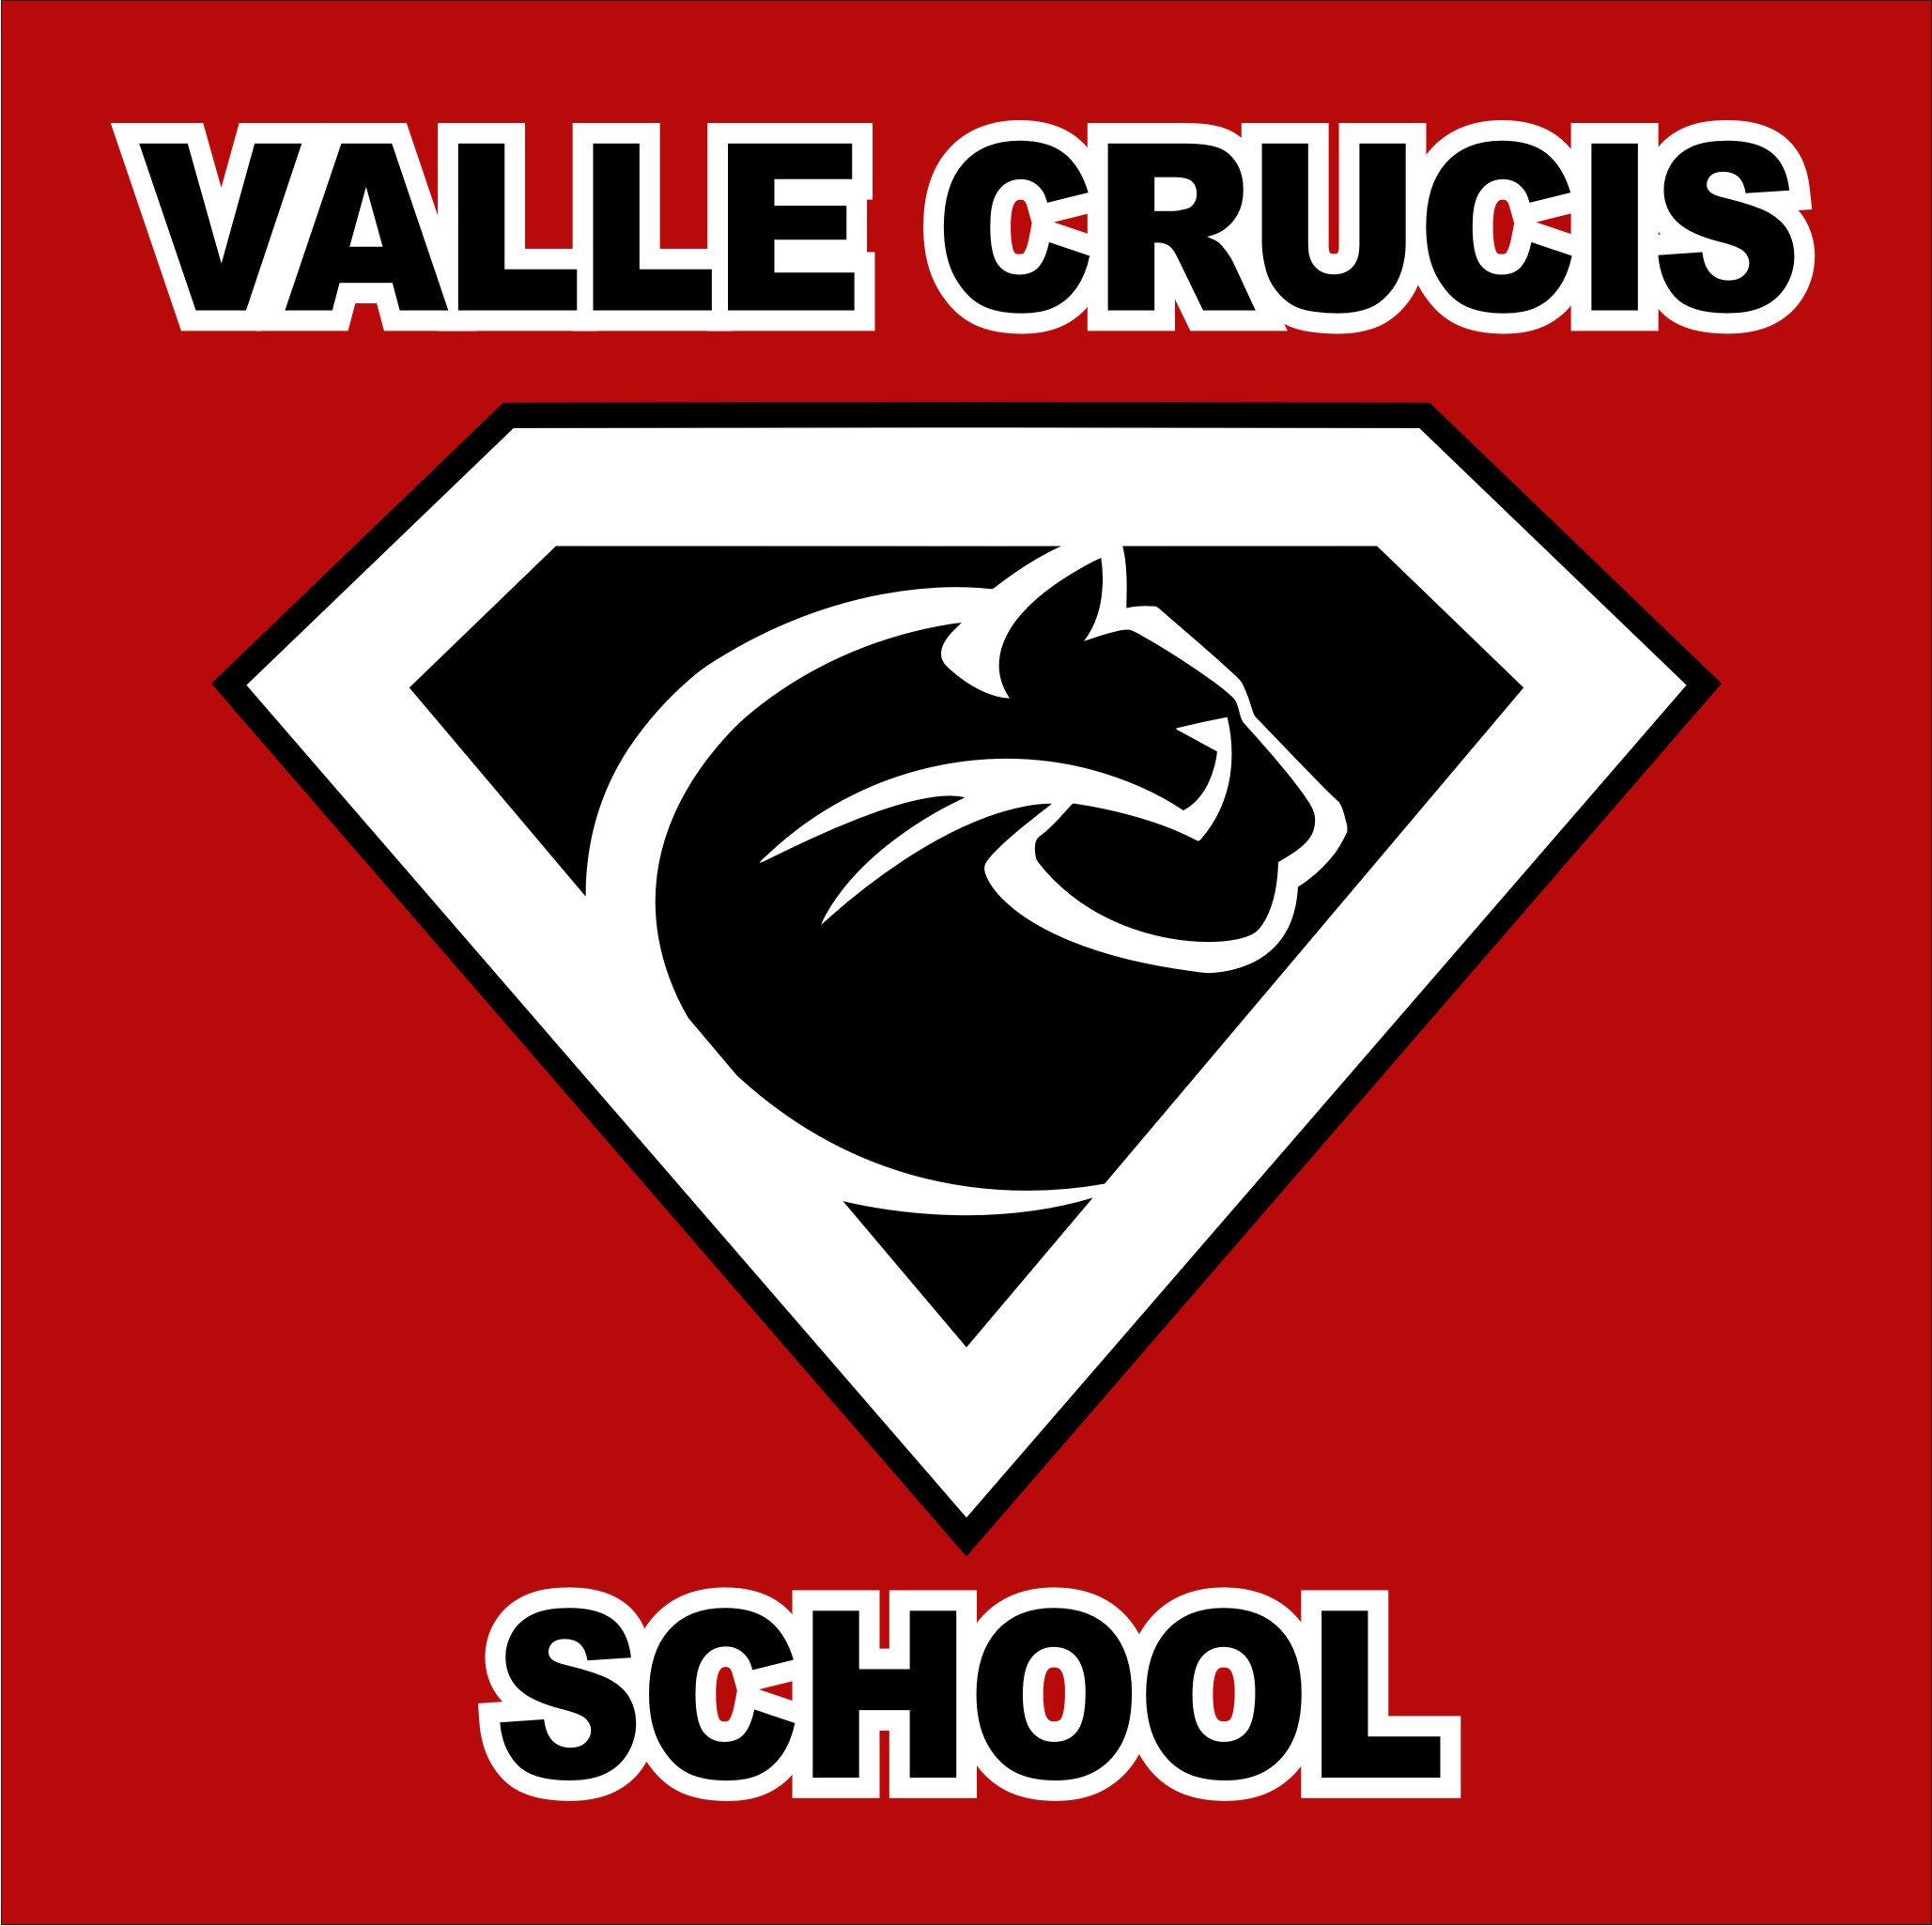 Image result for valle crucis school